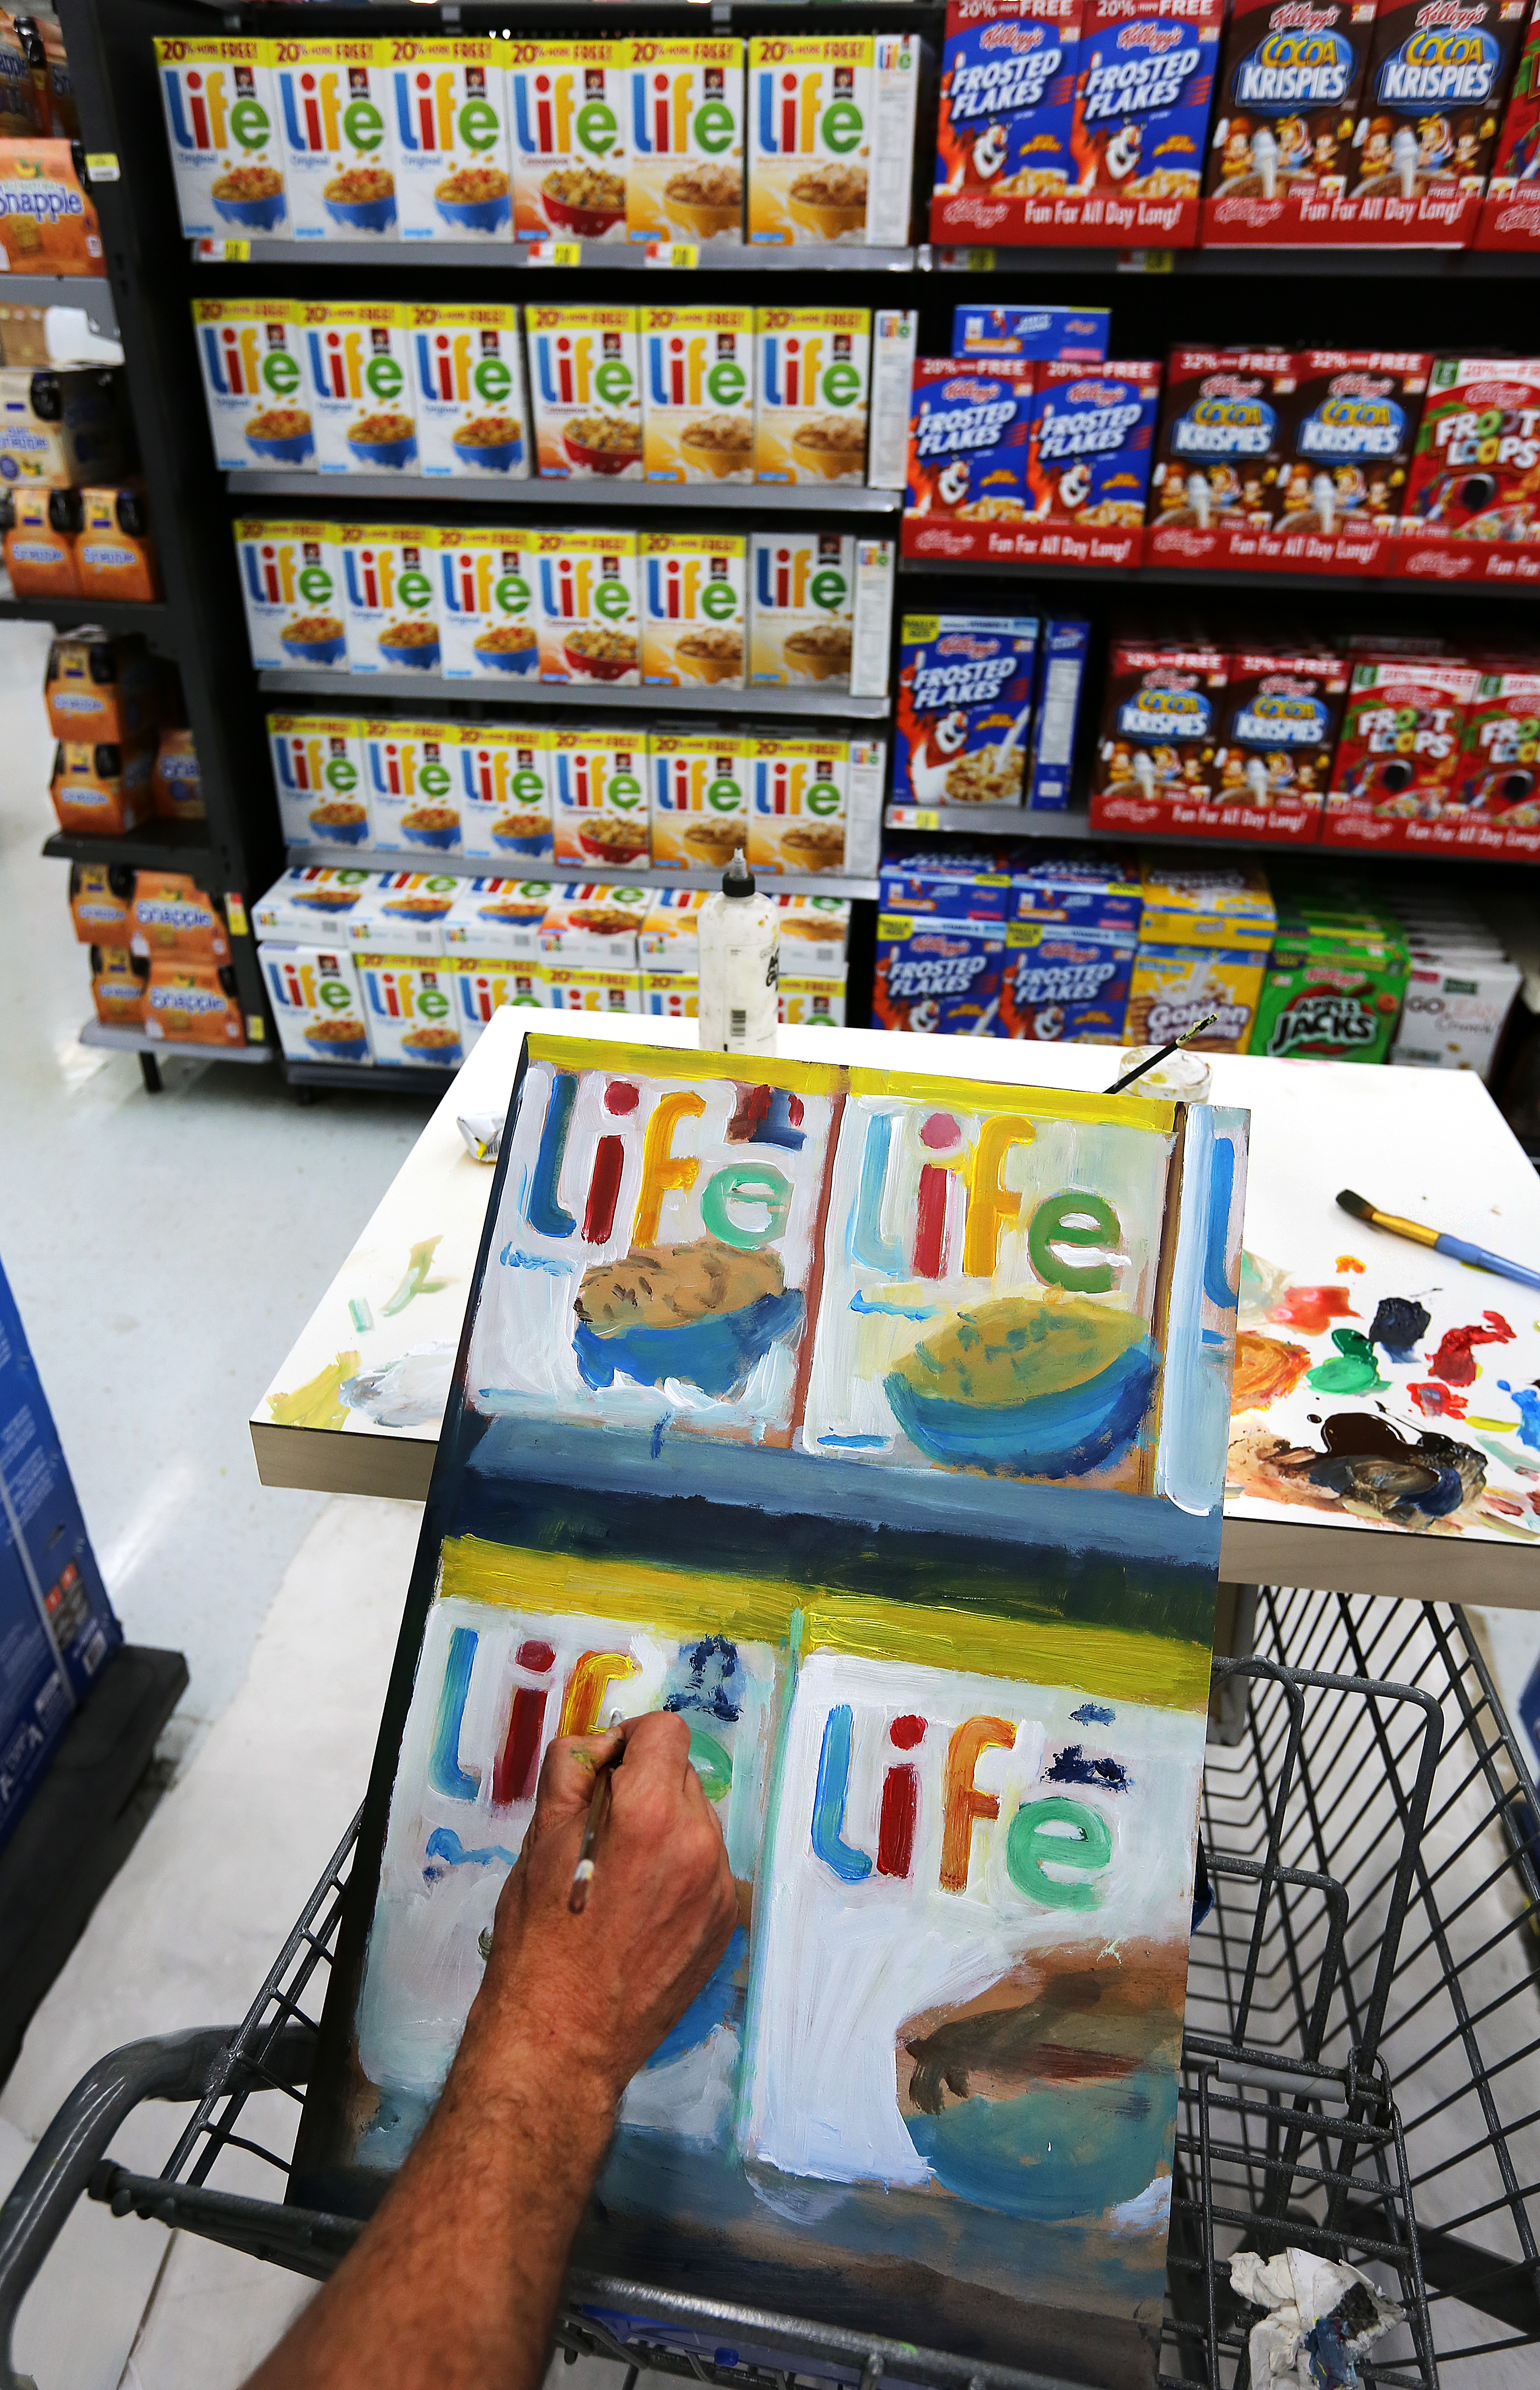 An artist finds inspiration in Walmart's aisles - The Boston